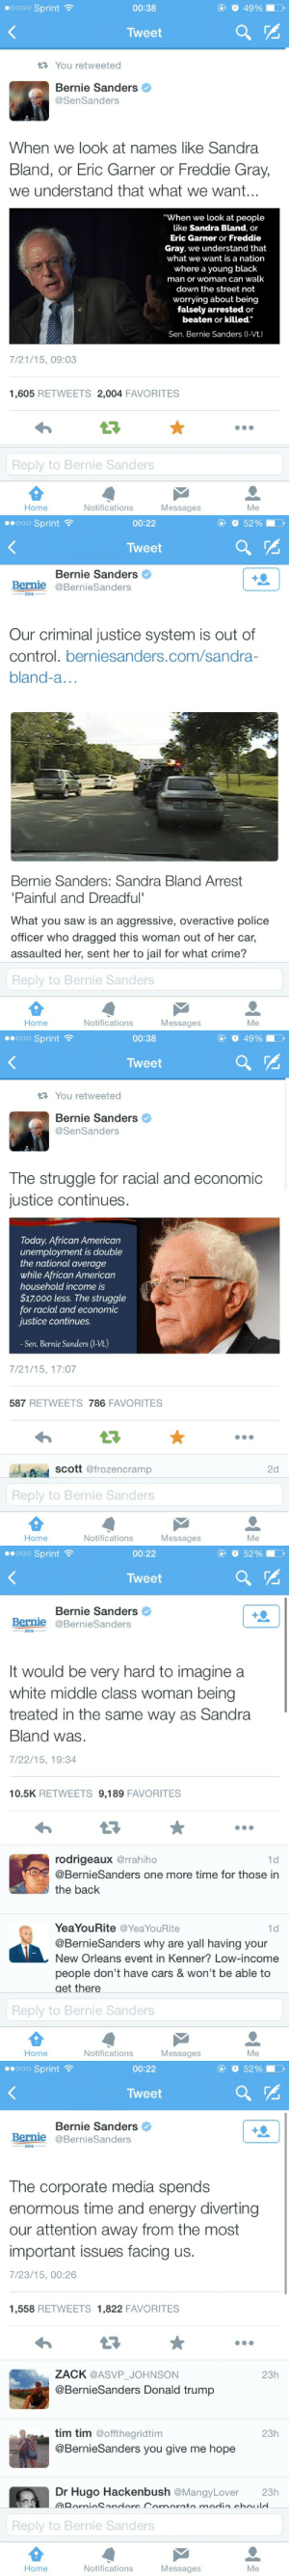 """reverseracism:  africanrelic:  crazyykenziee:  SHOUT OUT TO 2016 PRESIDENTIAL CANDIDATE BERNIE SANDERS FOR USING HIS POSITION OF POWER TO SPEAK ABOUT THIS ISSUE AND NOT STAYING SILENT LIKE SO MANY OTHERS!!!!!    I almost can't believe he's doing this. No one ever does this. Especially not to this depth  Honestly, get out and vote.  Yes fake activists insisted he didn't care about people. Nowadays people talk just to talk without checking facts, yes he's white and has privilege but being me a better candidate. Can't ? Then stfu and vote for him: O 49%  •0000 Sprint ?  00:38  Tweet  17 You retweeted  Bernie Sanders  @SenSanders  When we look at names like Sandra  Bland, or Eric Garner or Freddie Gray,  we understand that what we want...  """"When we look at people  like Sandra Bland, or  Eric Garner or Freddie  Gray, we understand that  what we want is a nation  where a young black  man or woman can walk  down the street not  worrying about being  falsely arrested or  beaten or killed.""""  Sen. Bernie Sanders (I-Vt.)  7/21/15, 09:03  1,605 RETWEETS 2,004 FAVORITES  17  Reply to Bernie Sanders  Home  Notifications  Messages  Me   00000 Sprint ?  O52%  00:22  Tweet  Bernie Sanders  Bernie @BernieSanders  2016  Our criminal justice system is out of  control. berniesanders.com/sandra-  bland-a...  Bernie Sanders: Sandra Bland Arrest  'Painful and Dreadful'  What you saw is an aggressive, overactive police  officer who dragged this woman out of her car,  assaulted her, sent her to jail for what crime?  Reply to Bernie Sanders  Home  Notifications  Messages  Me   O 49%  00000 Sprint ?  00:38  Tweet  17 You retweeted  Bernie Sanders  @SenSanders  The struggle for racial and economic  justice continues.  Today, African American  unemployment is double  the national average  while African American  household income is  $17,000 less. The struggle  for racial and economic  justice continues.  Sen. Bernie Sanders (1-Vt.)  7/21/15, 17:07  587 RETWEETS 786 FAVORITES  scott @frozencramp """